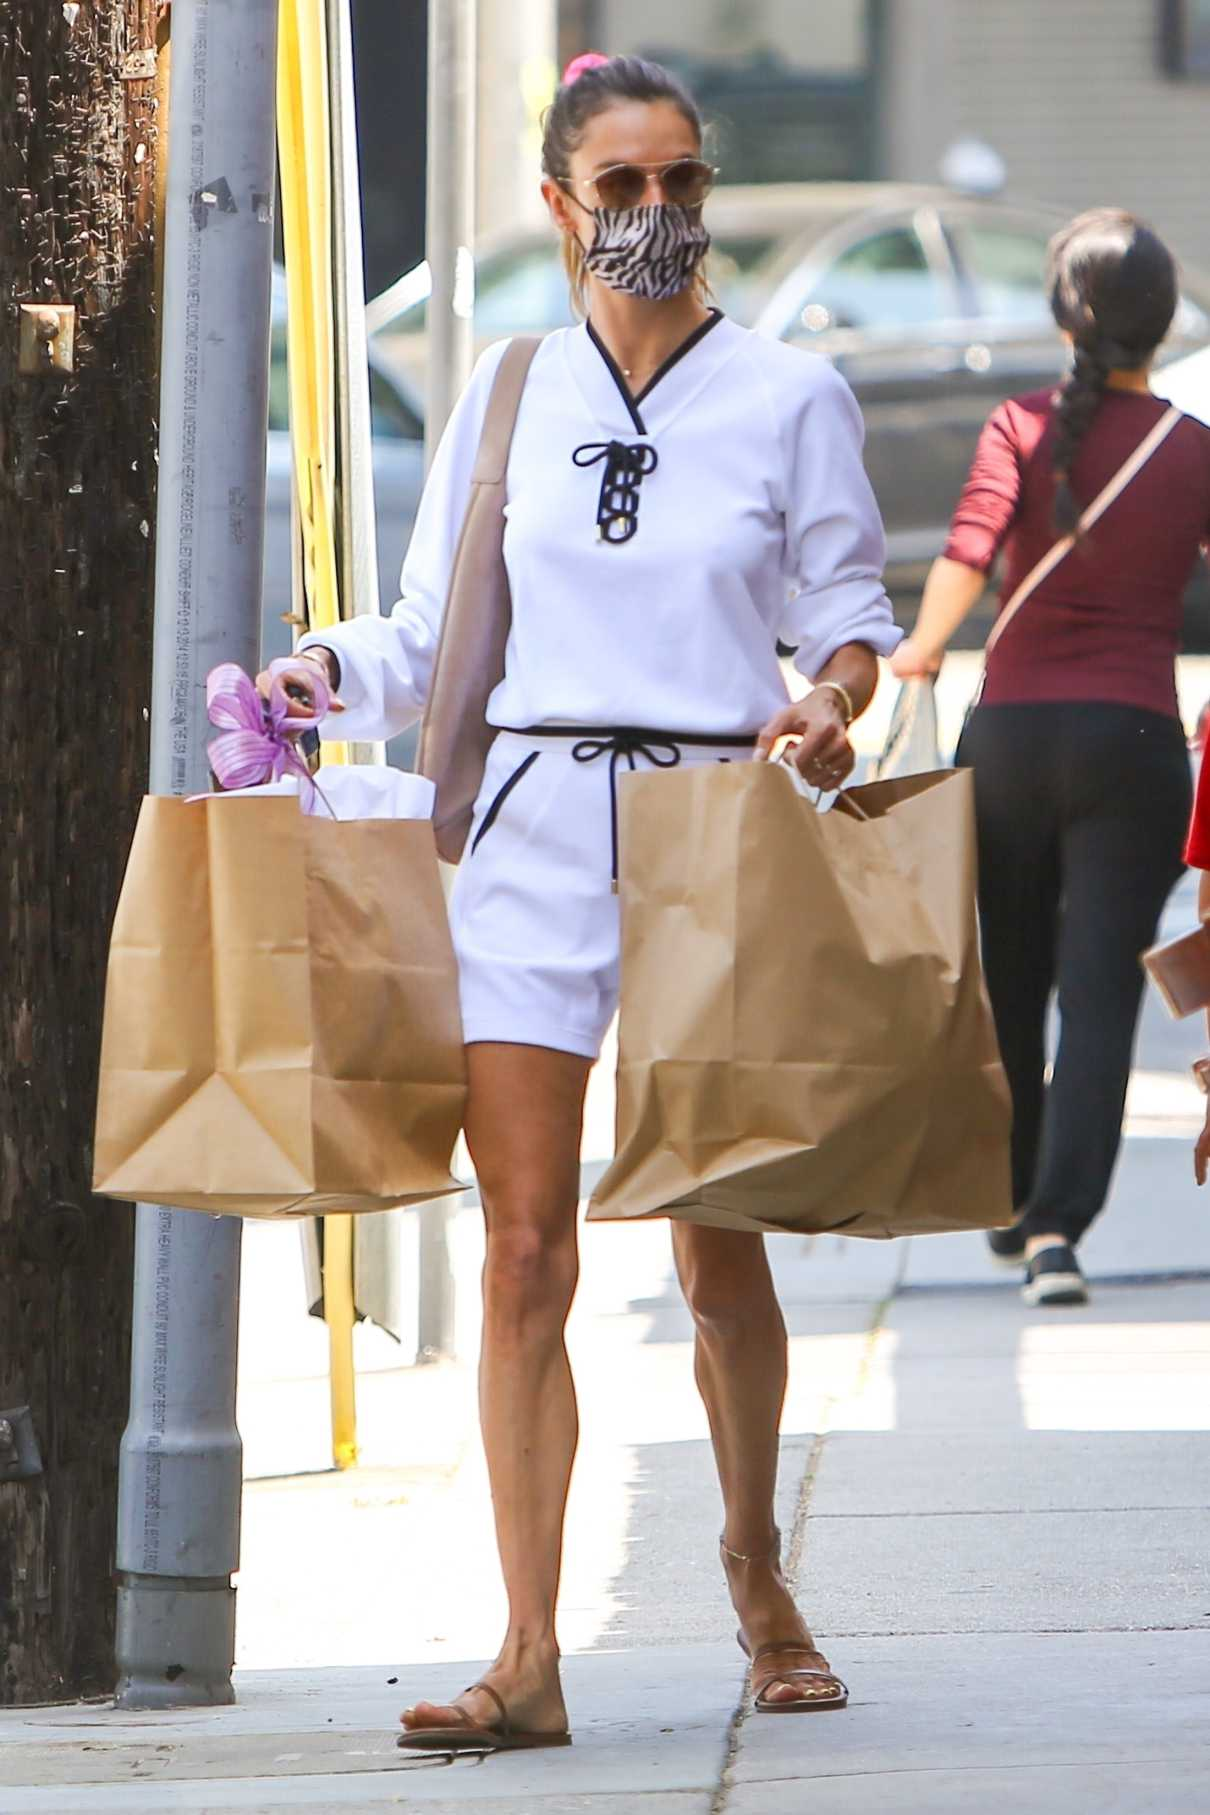 Alessandra Ambrosio in a White Outfit